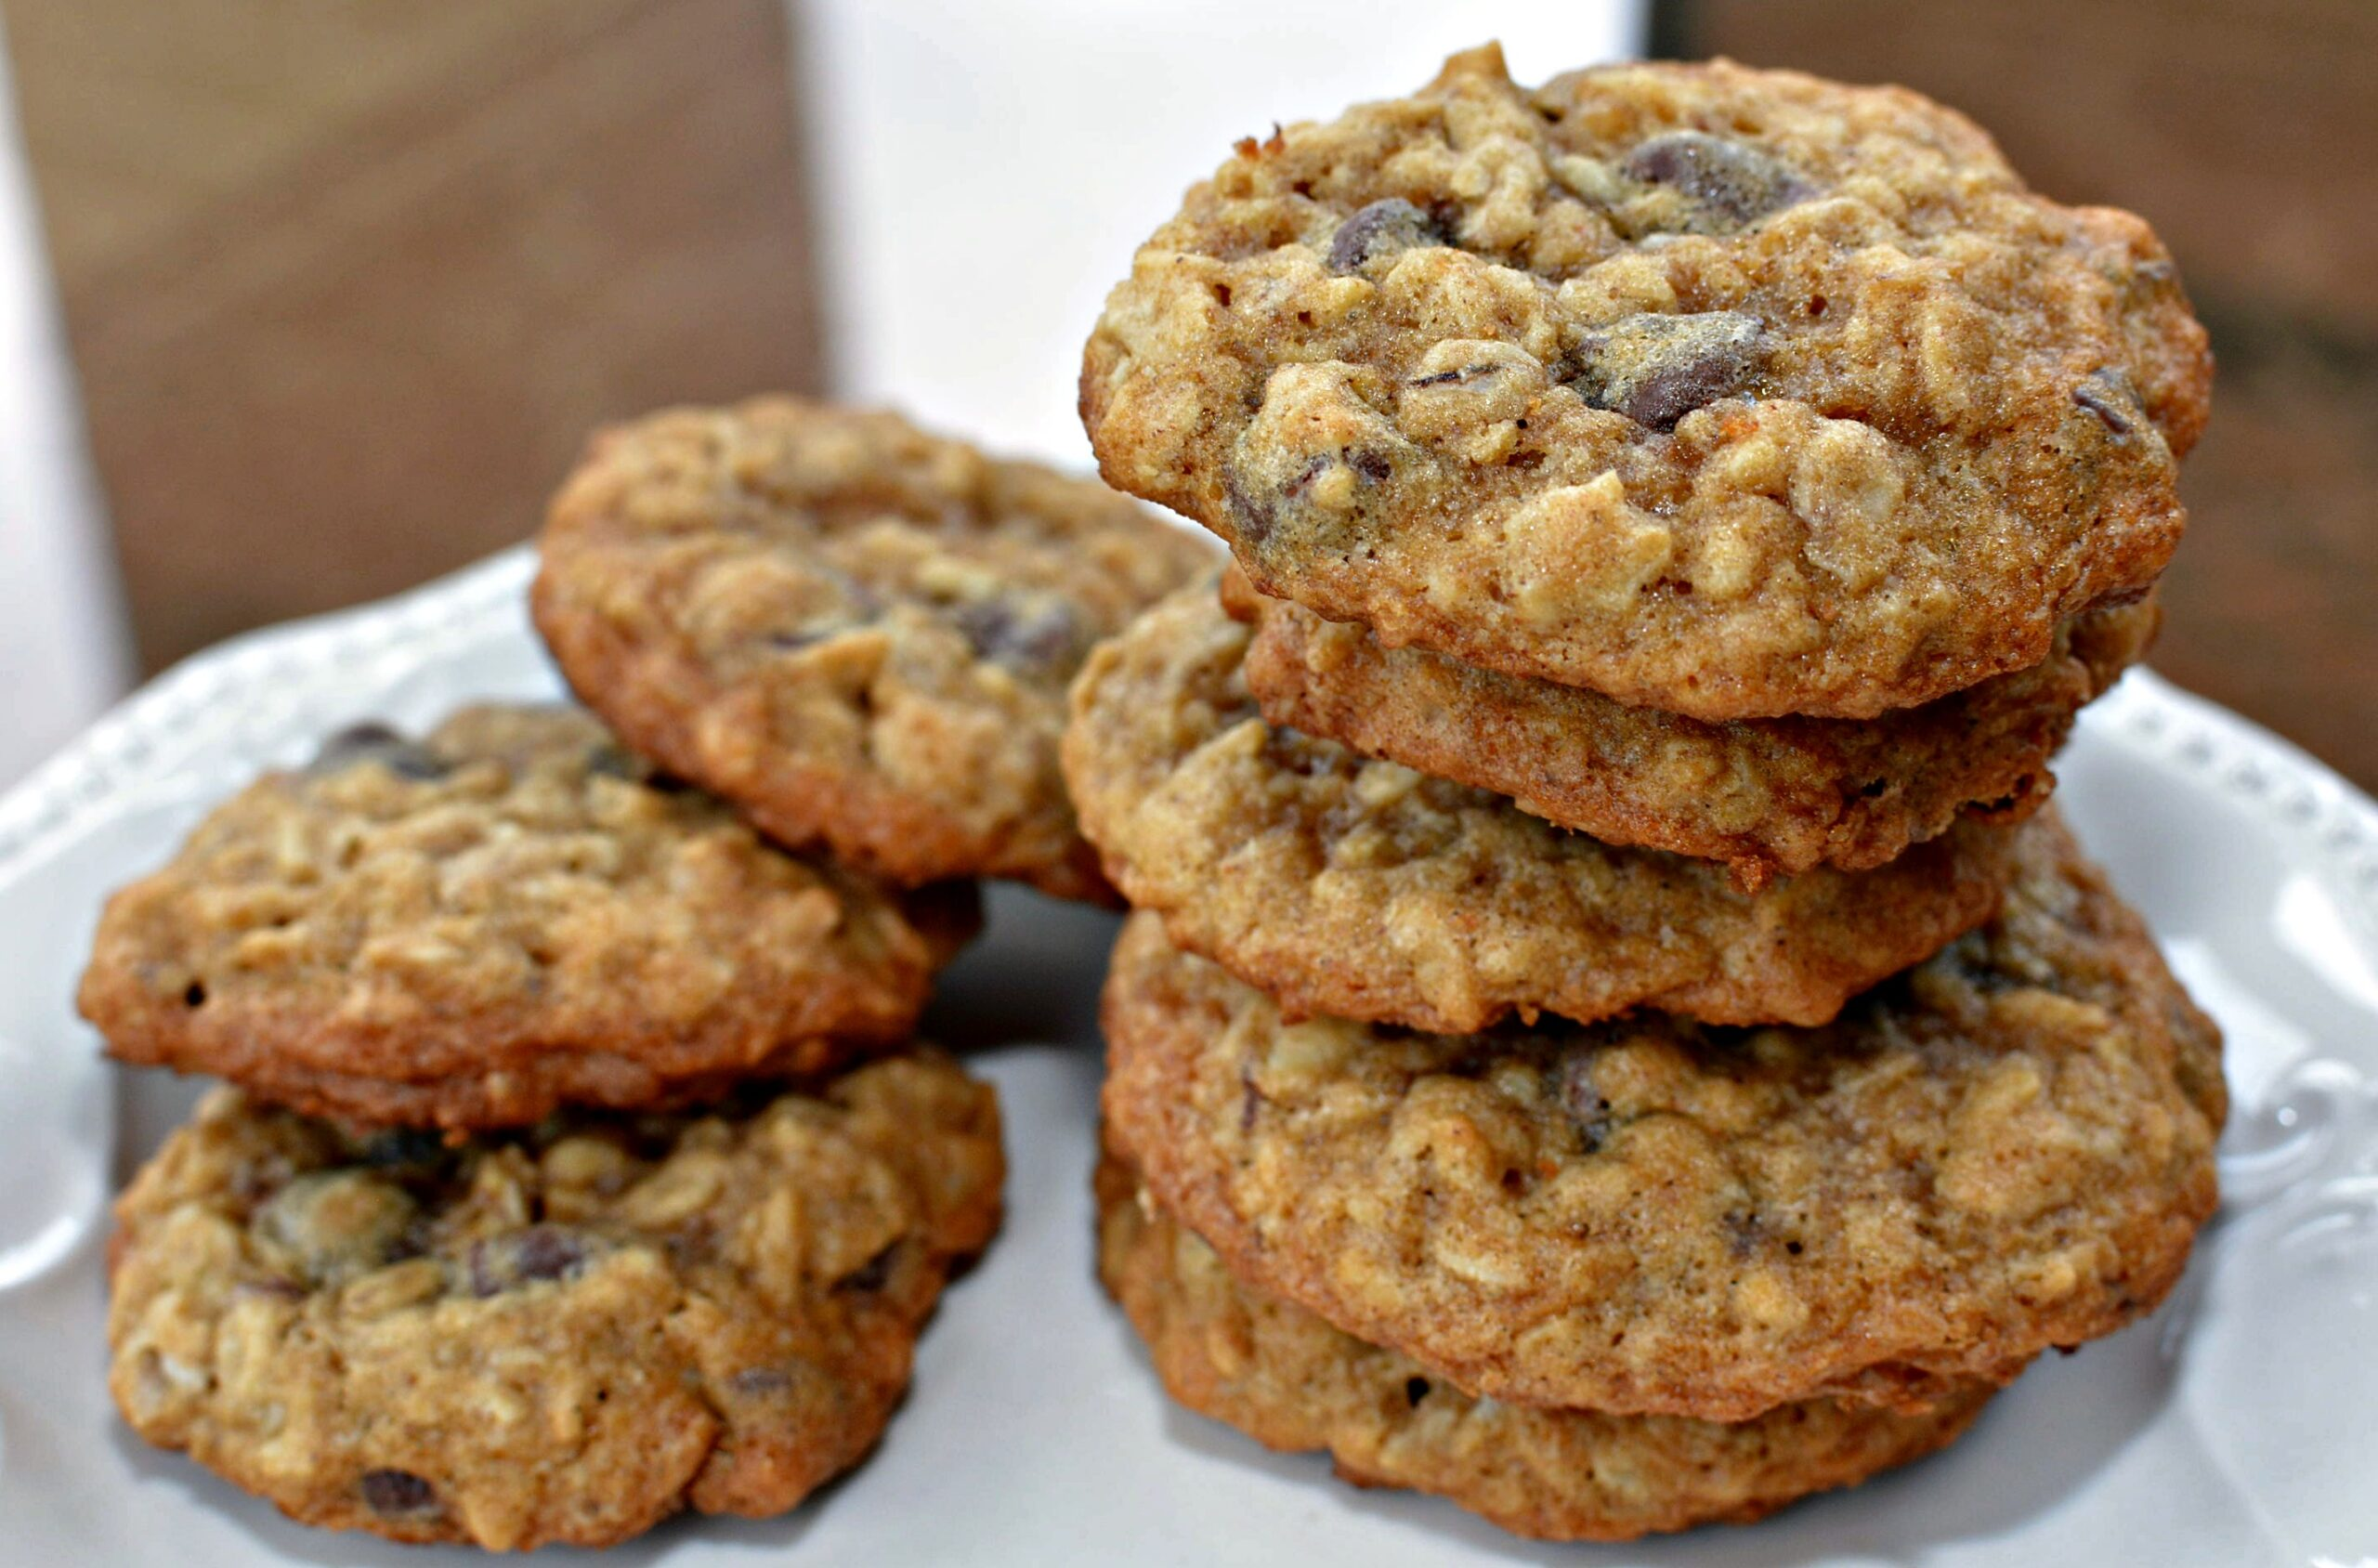 The BEST Oatmeal Chocolate Chip Cookies | The Cookin Chicks